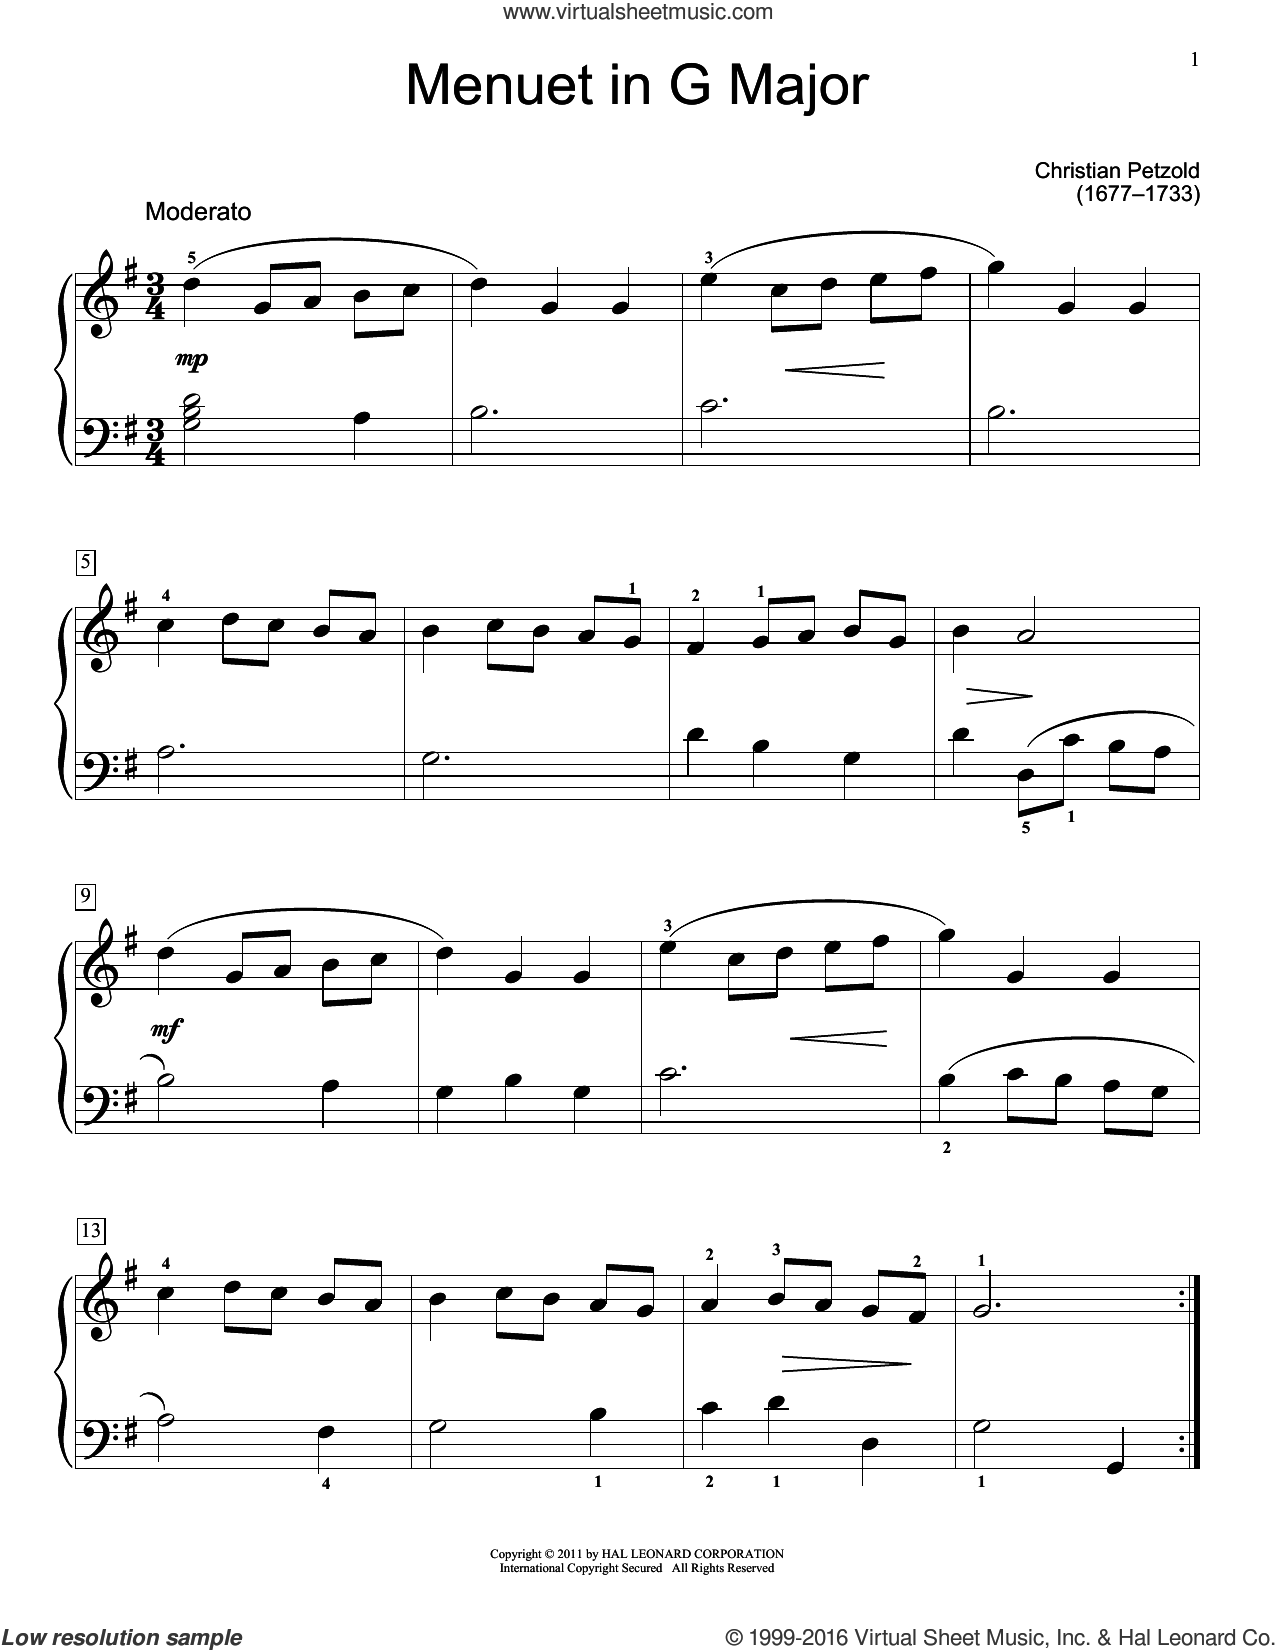 Menuet In G Major, BWV App. 114 sheet music for piano solo (elementary) by Christian Petzold, Jennifer Linn and Christos Tsitsaros (ed.), classical score, beginner piano (elementary)